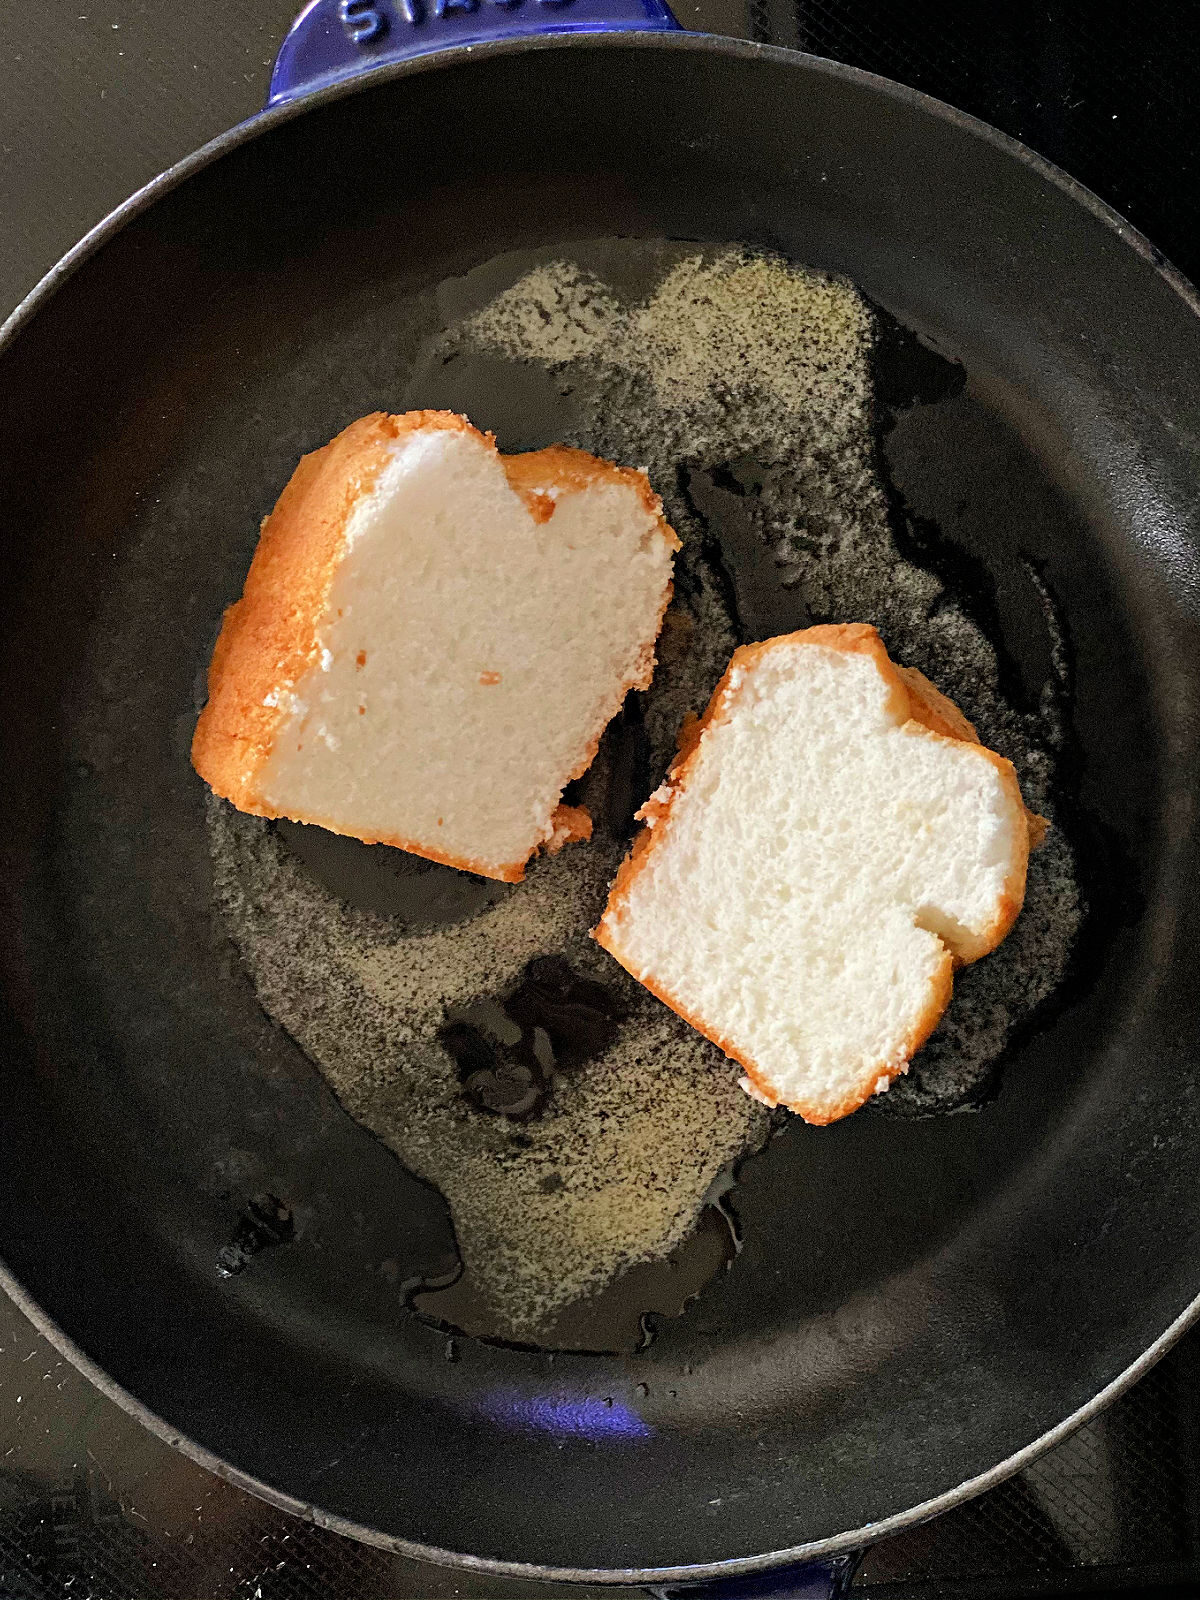 Two slices of angel food cake on melted butter in a skillet.